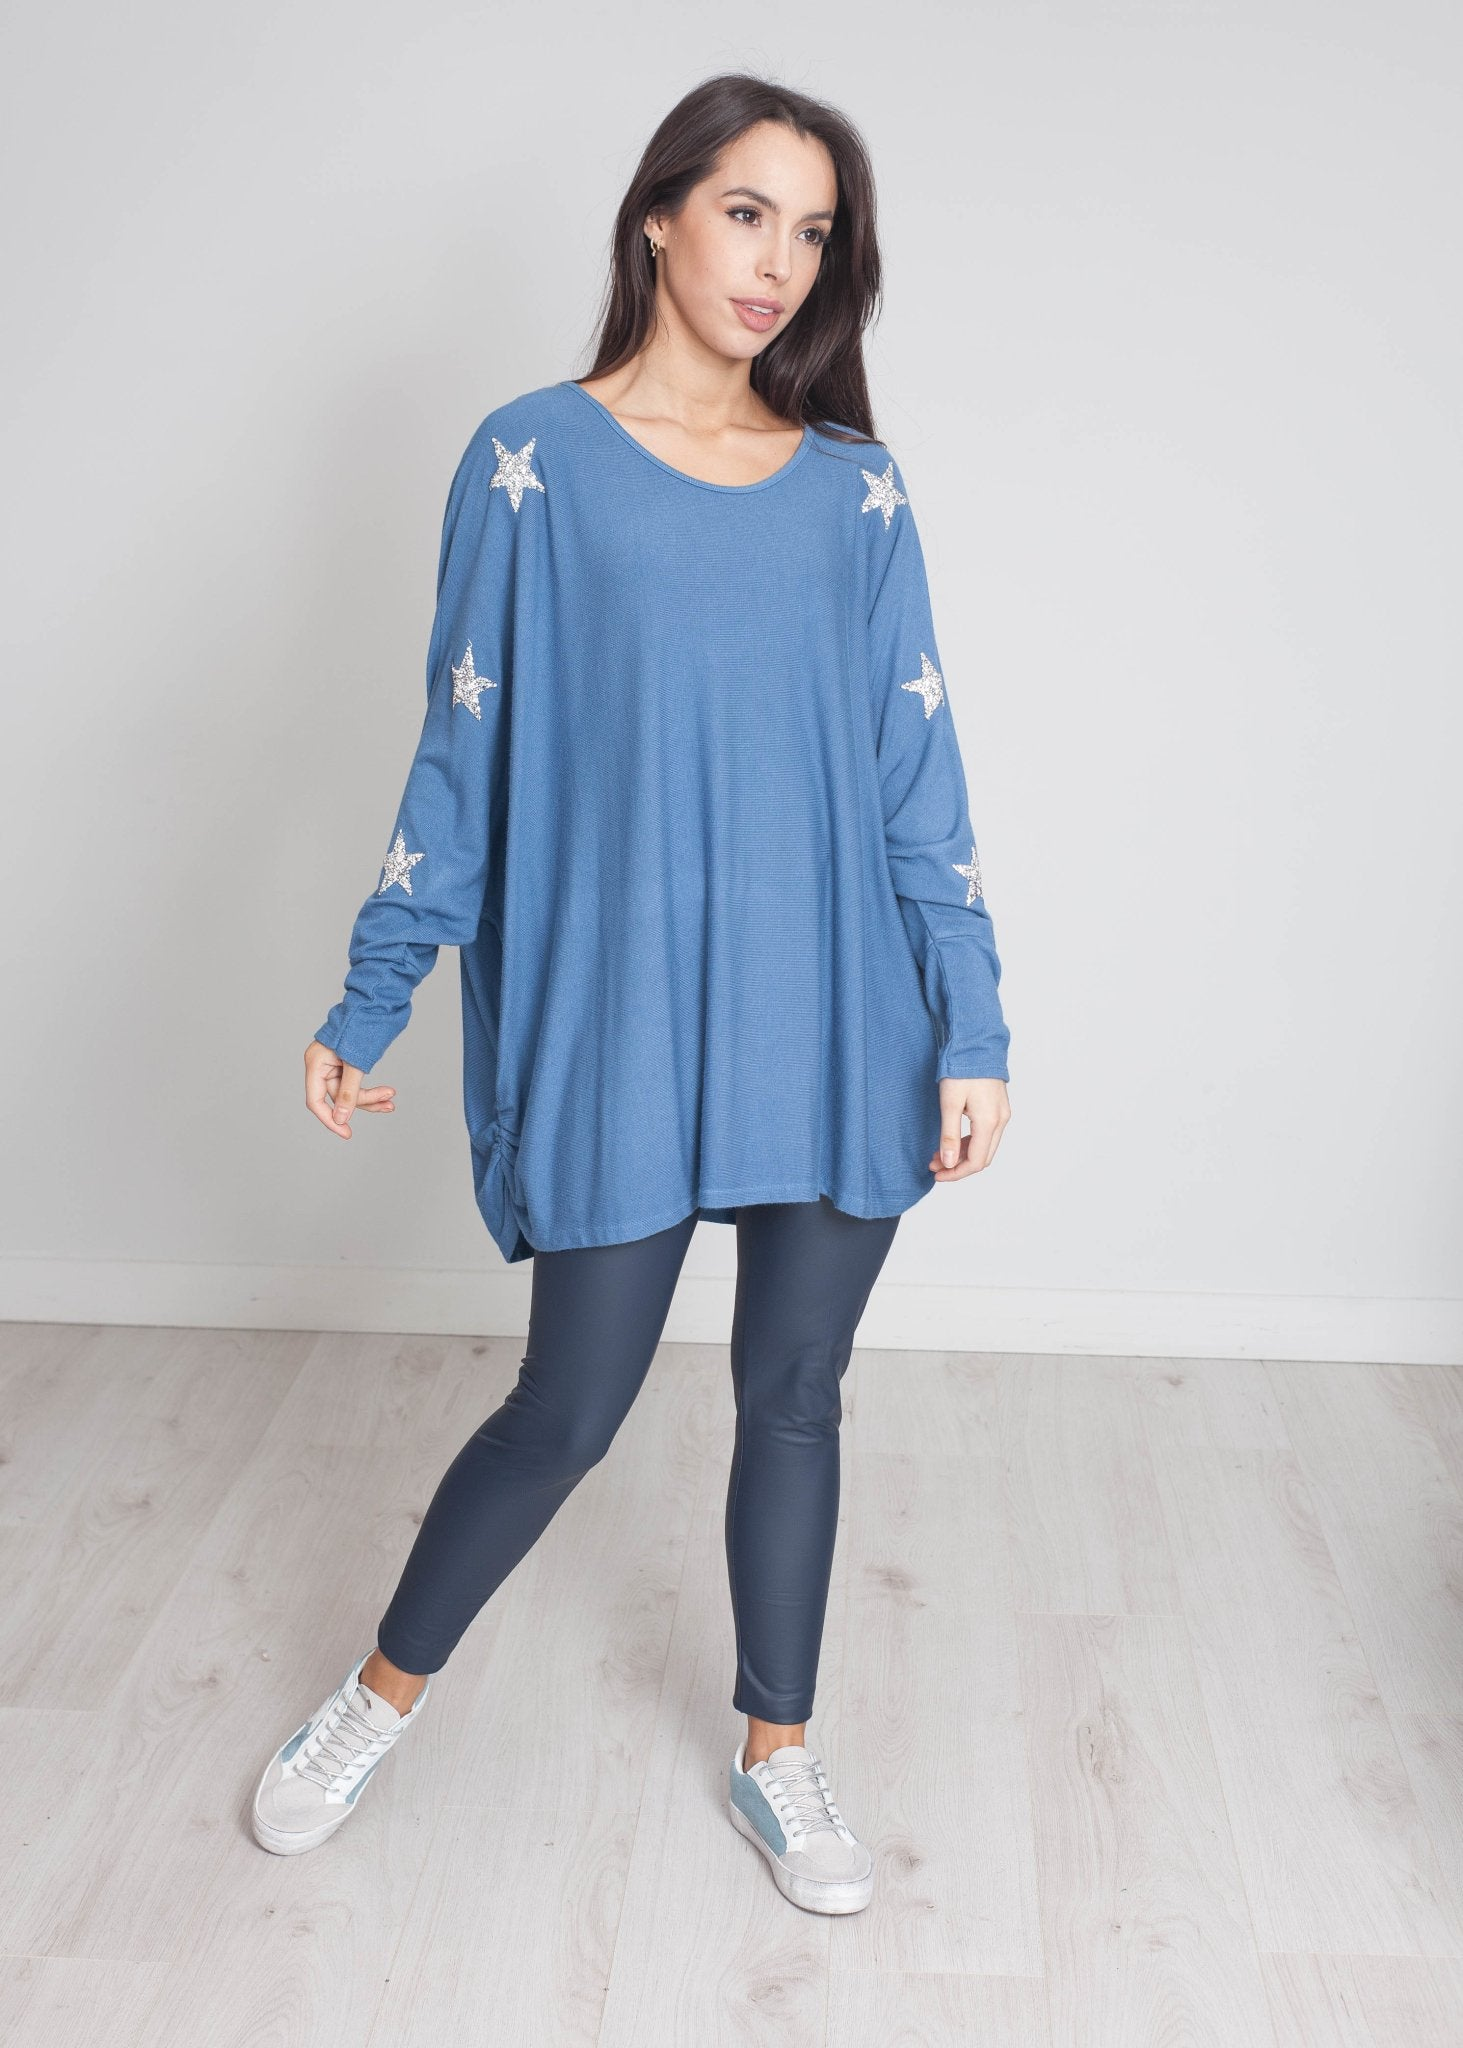 Priya Embellished Knit In Denim - The Walk in Wardrobe